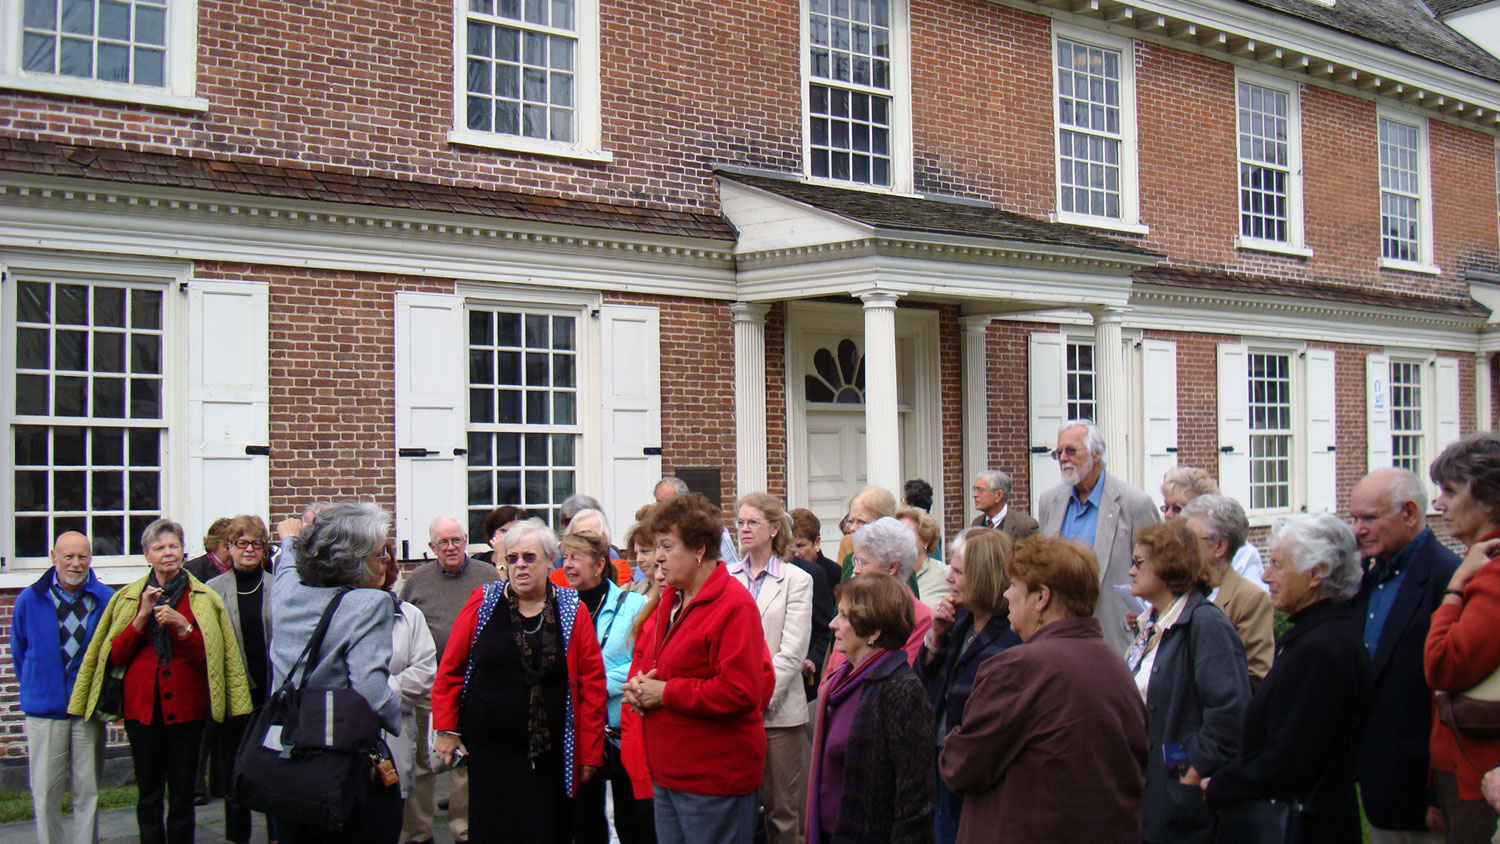 A visit to Philipse Manor Hall in Yonkers, NY.